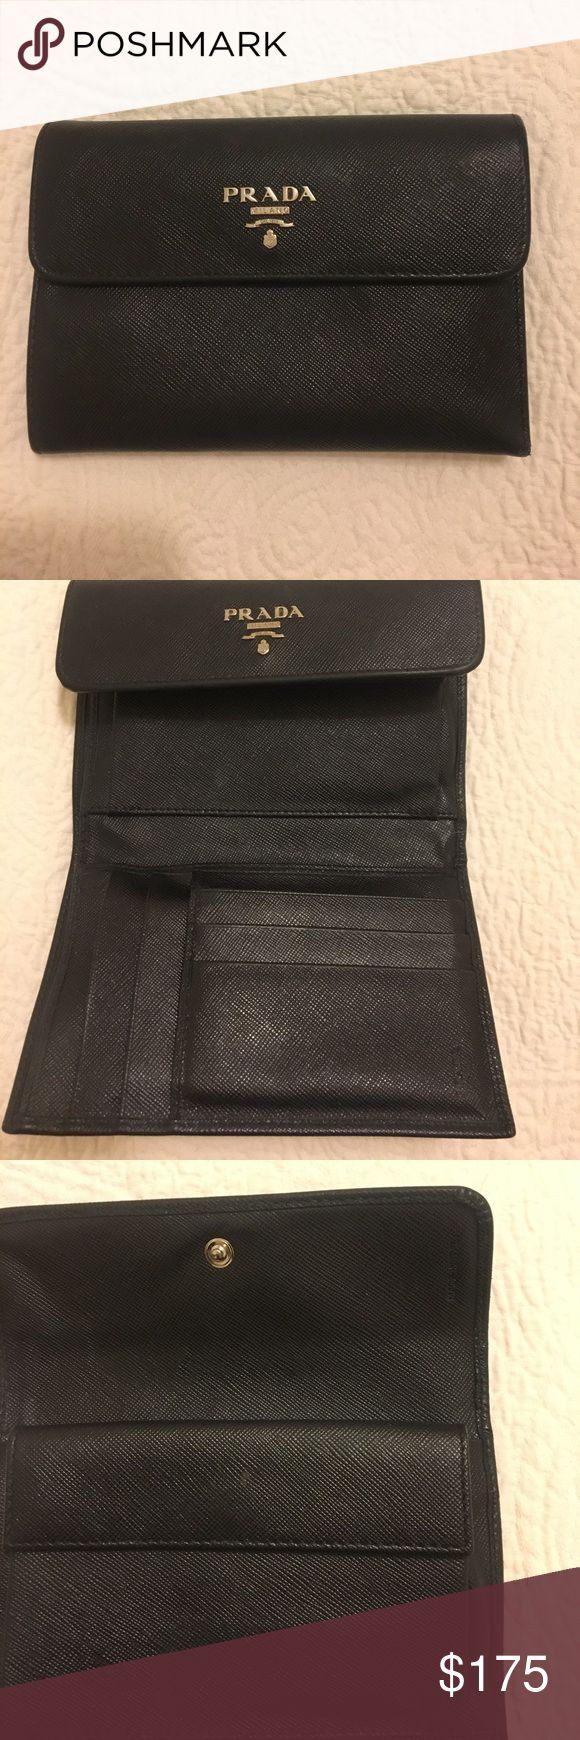 Prada black Saffiano Leather Wallet Prada black Saffiano Leather Wallet. In great condition!!!!! Shoes in picture to show size of wallet. Only 2 hours left at this price Prada Bags Wallets